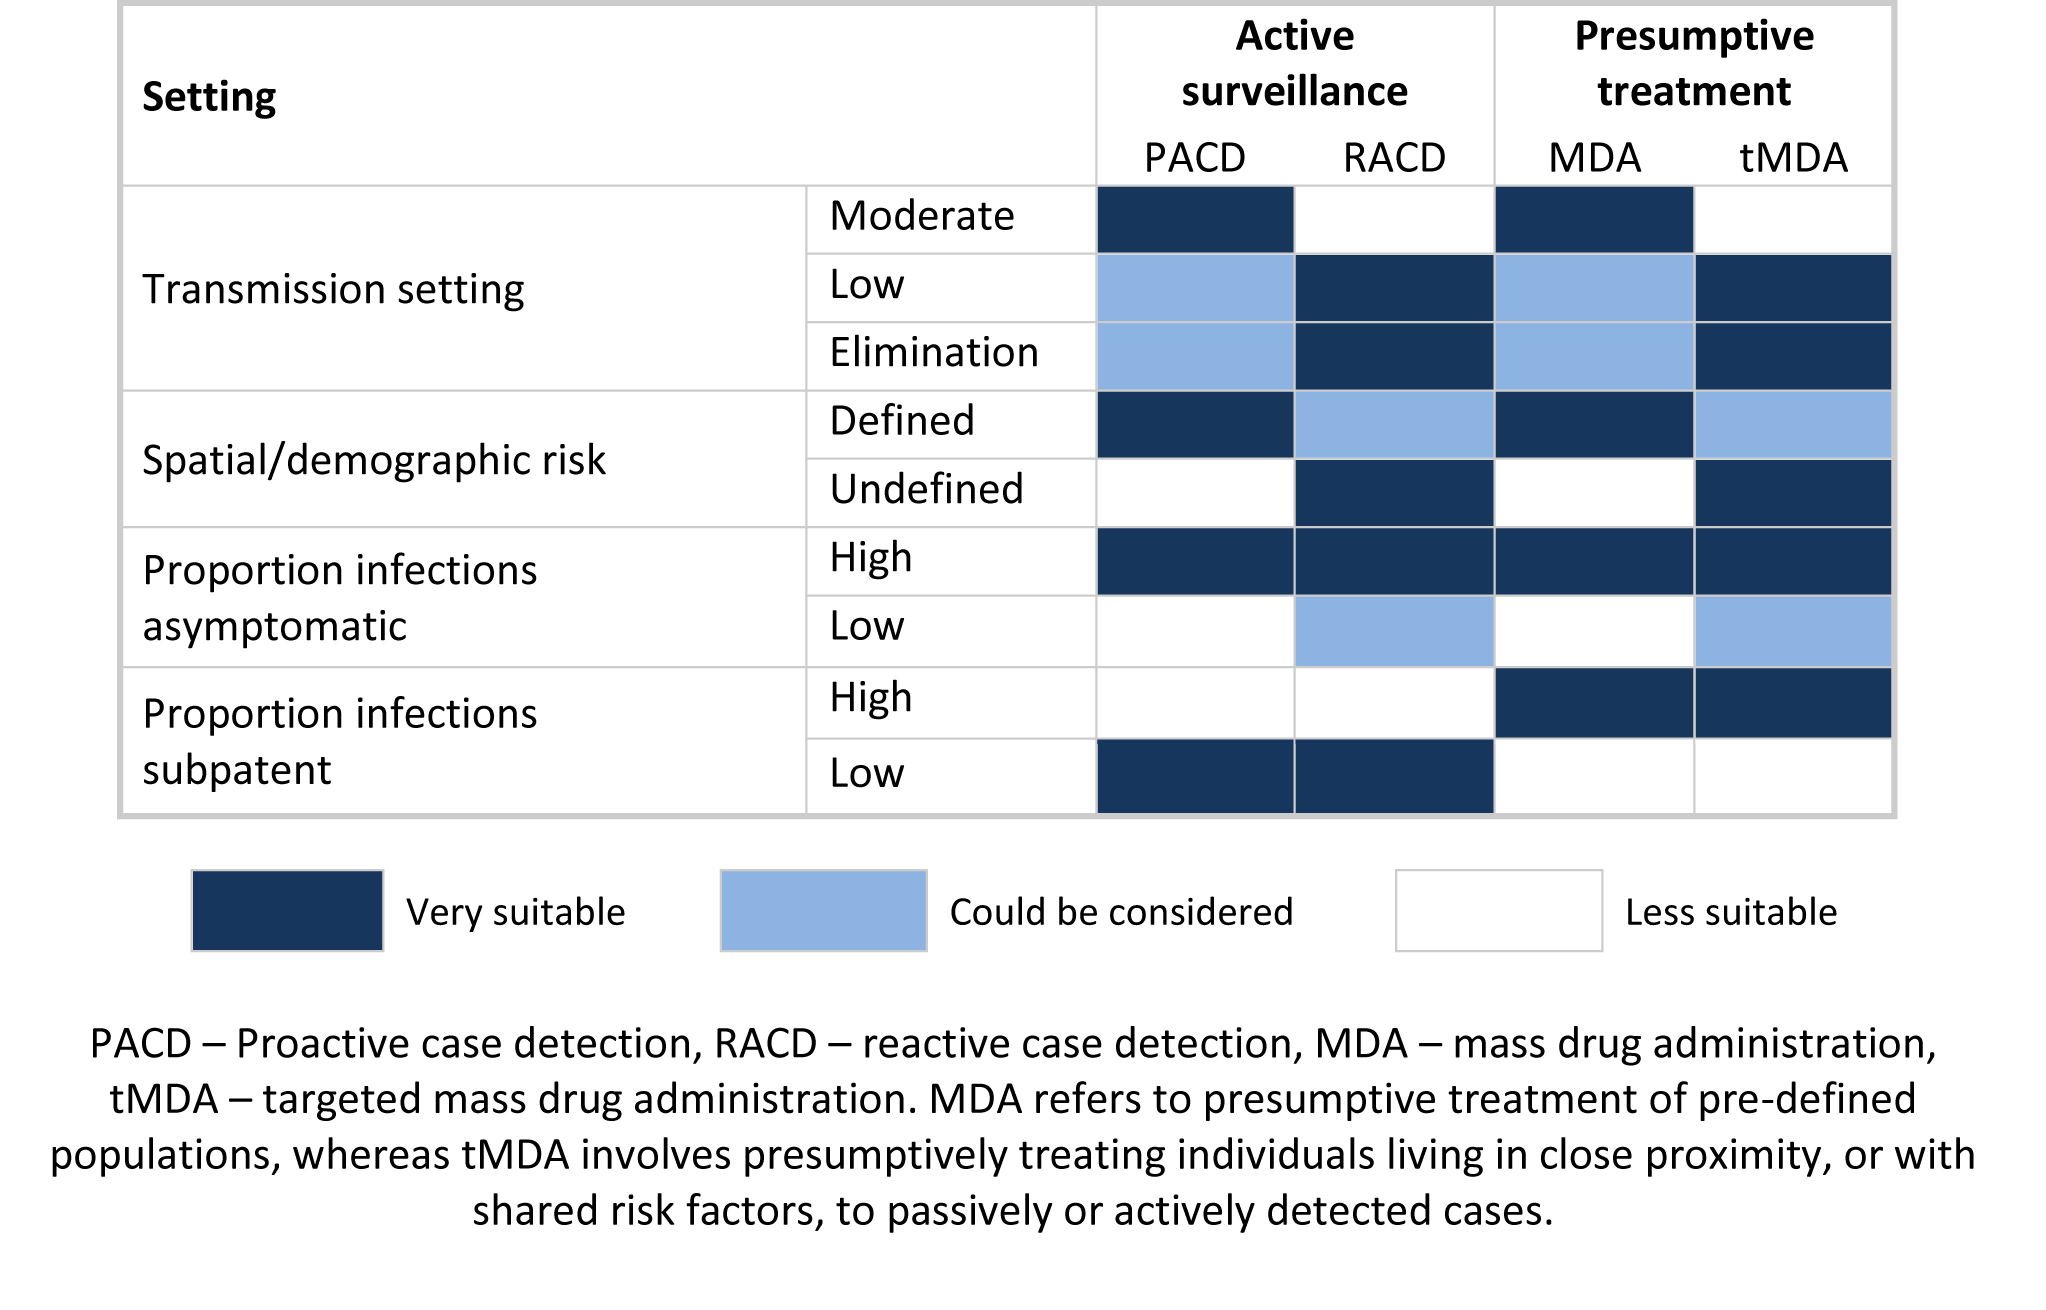 Potential application of different active surveillance and mass drug administration approaches to reduce transmission.